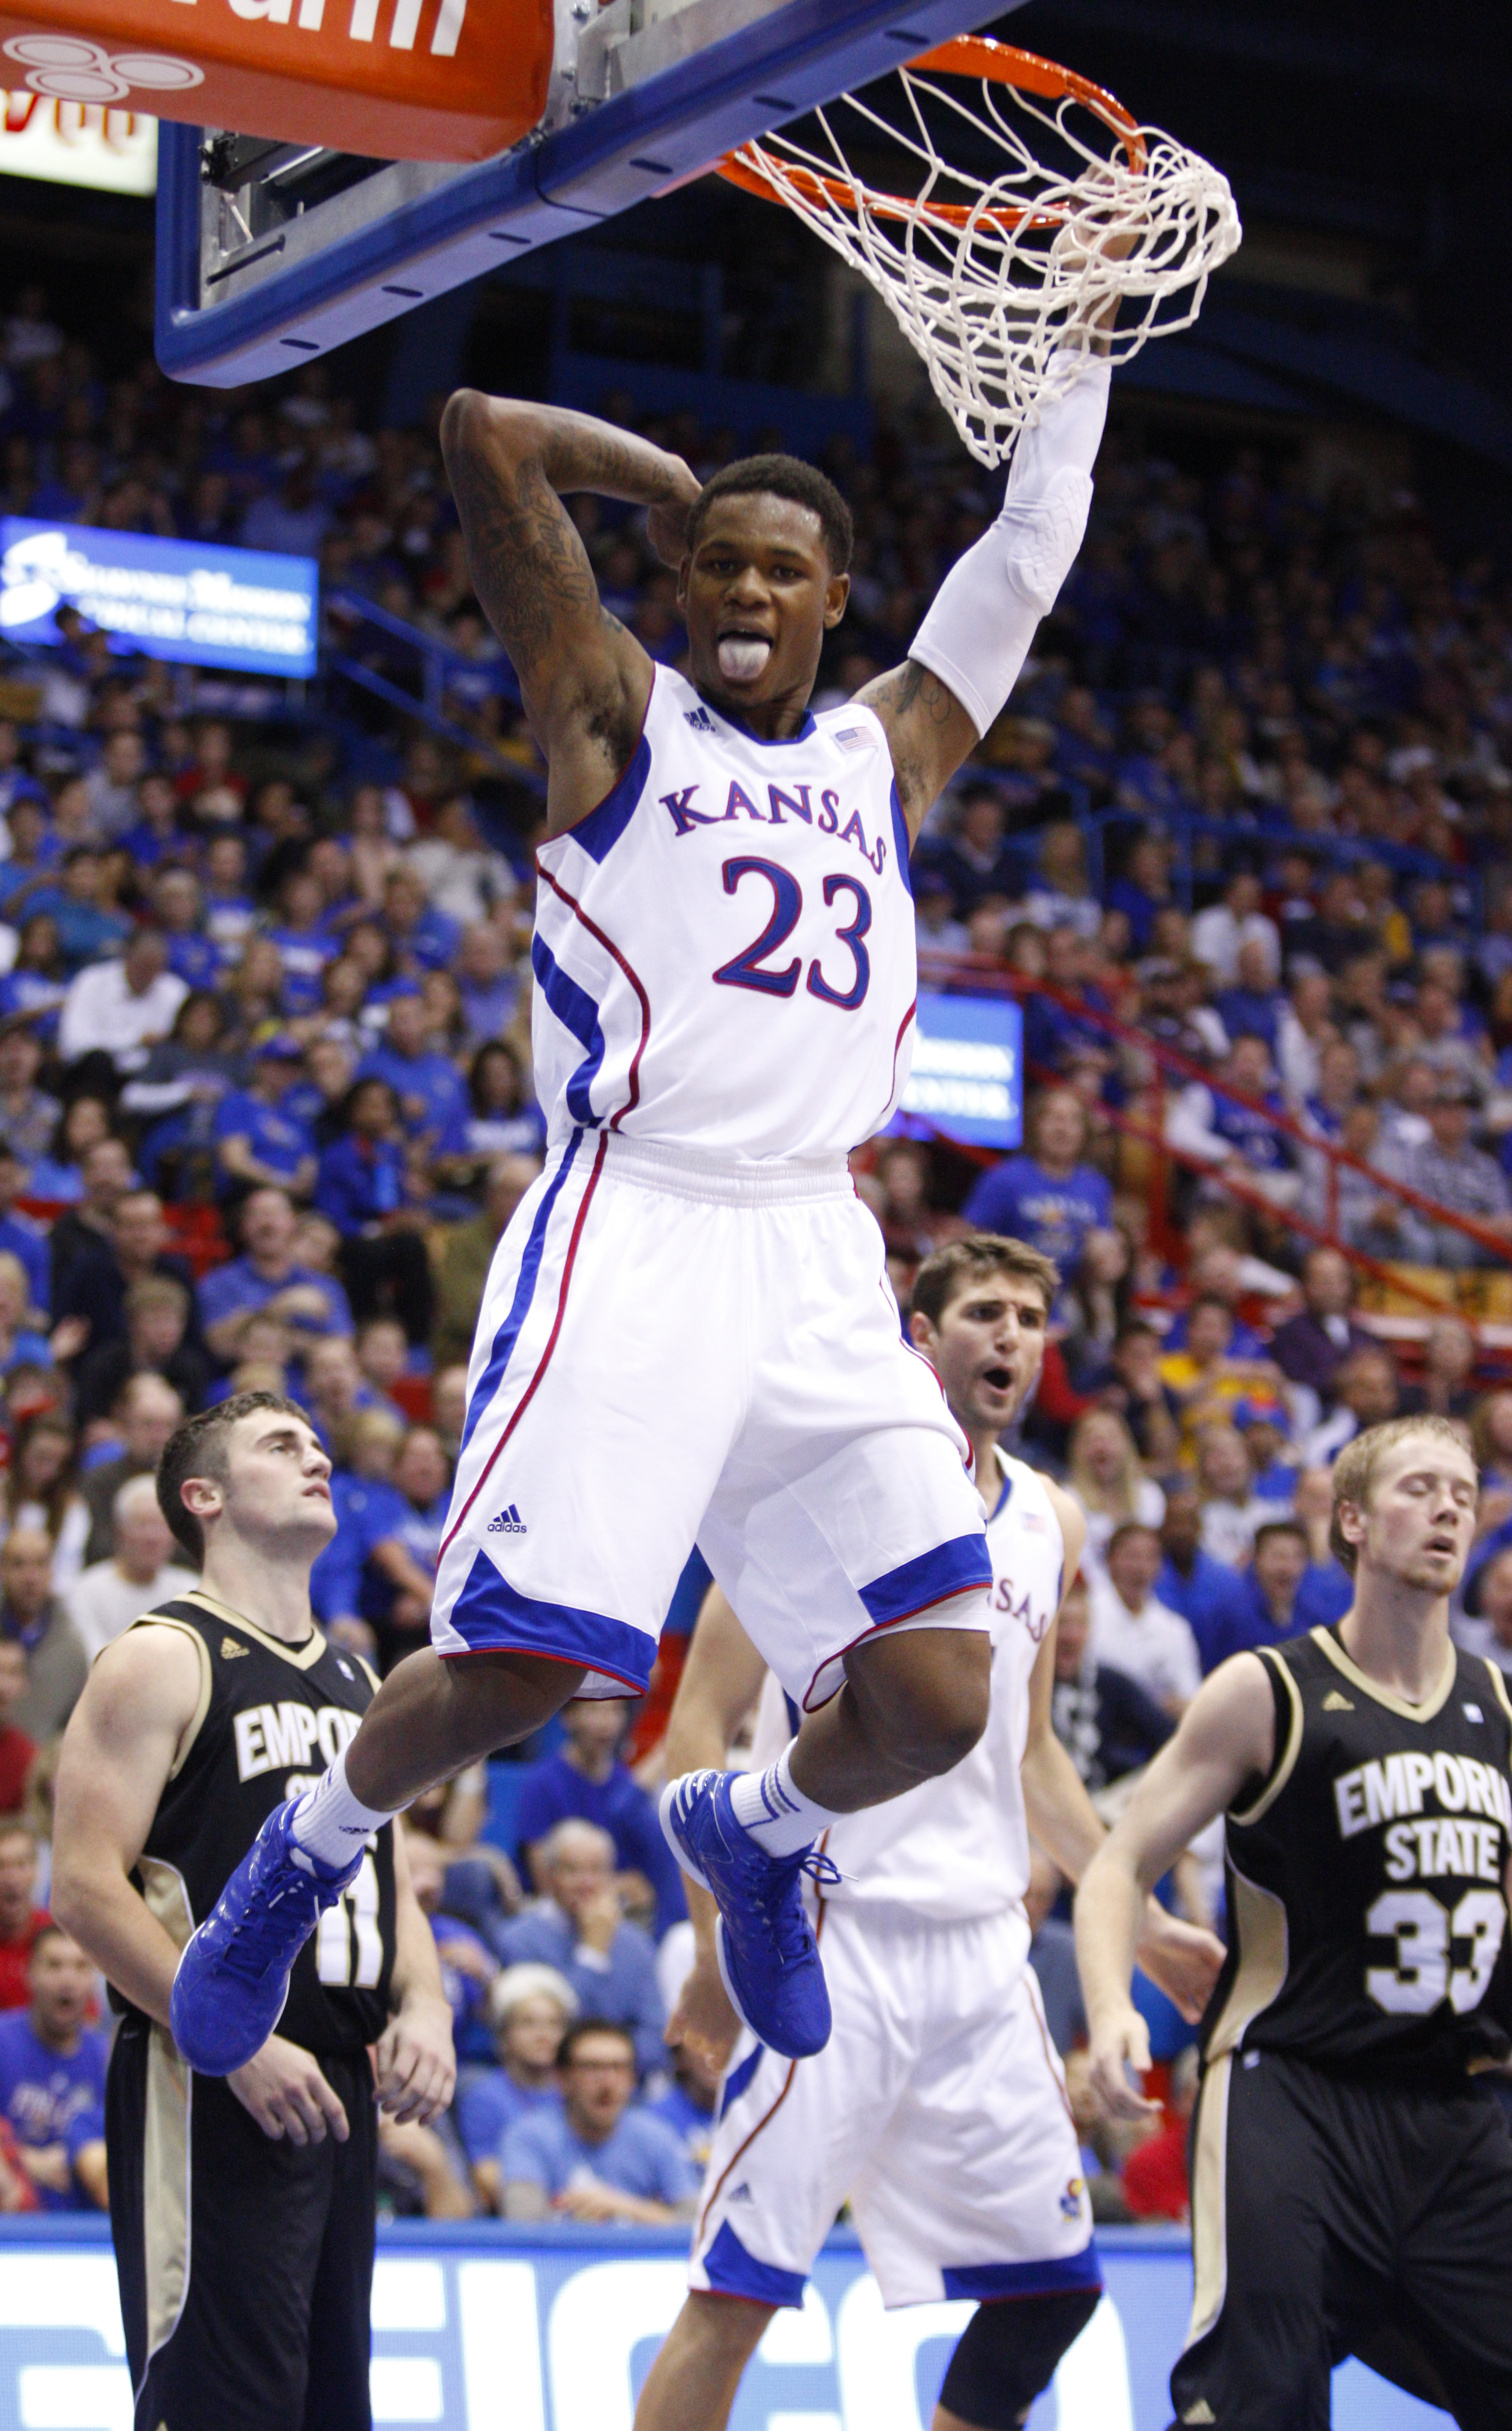 All Star Sprints >> Rising above: Ben McLemore elevates above adversity   News ...